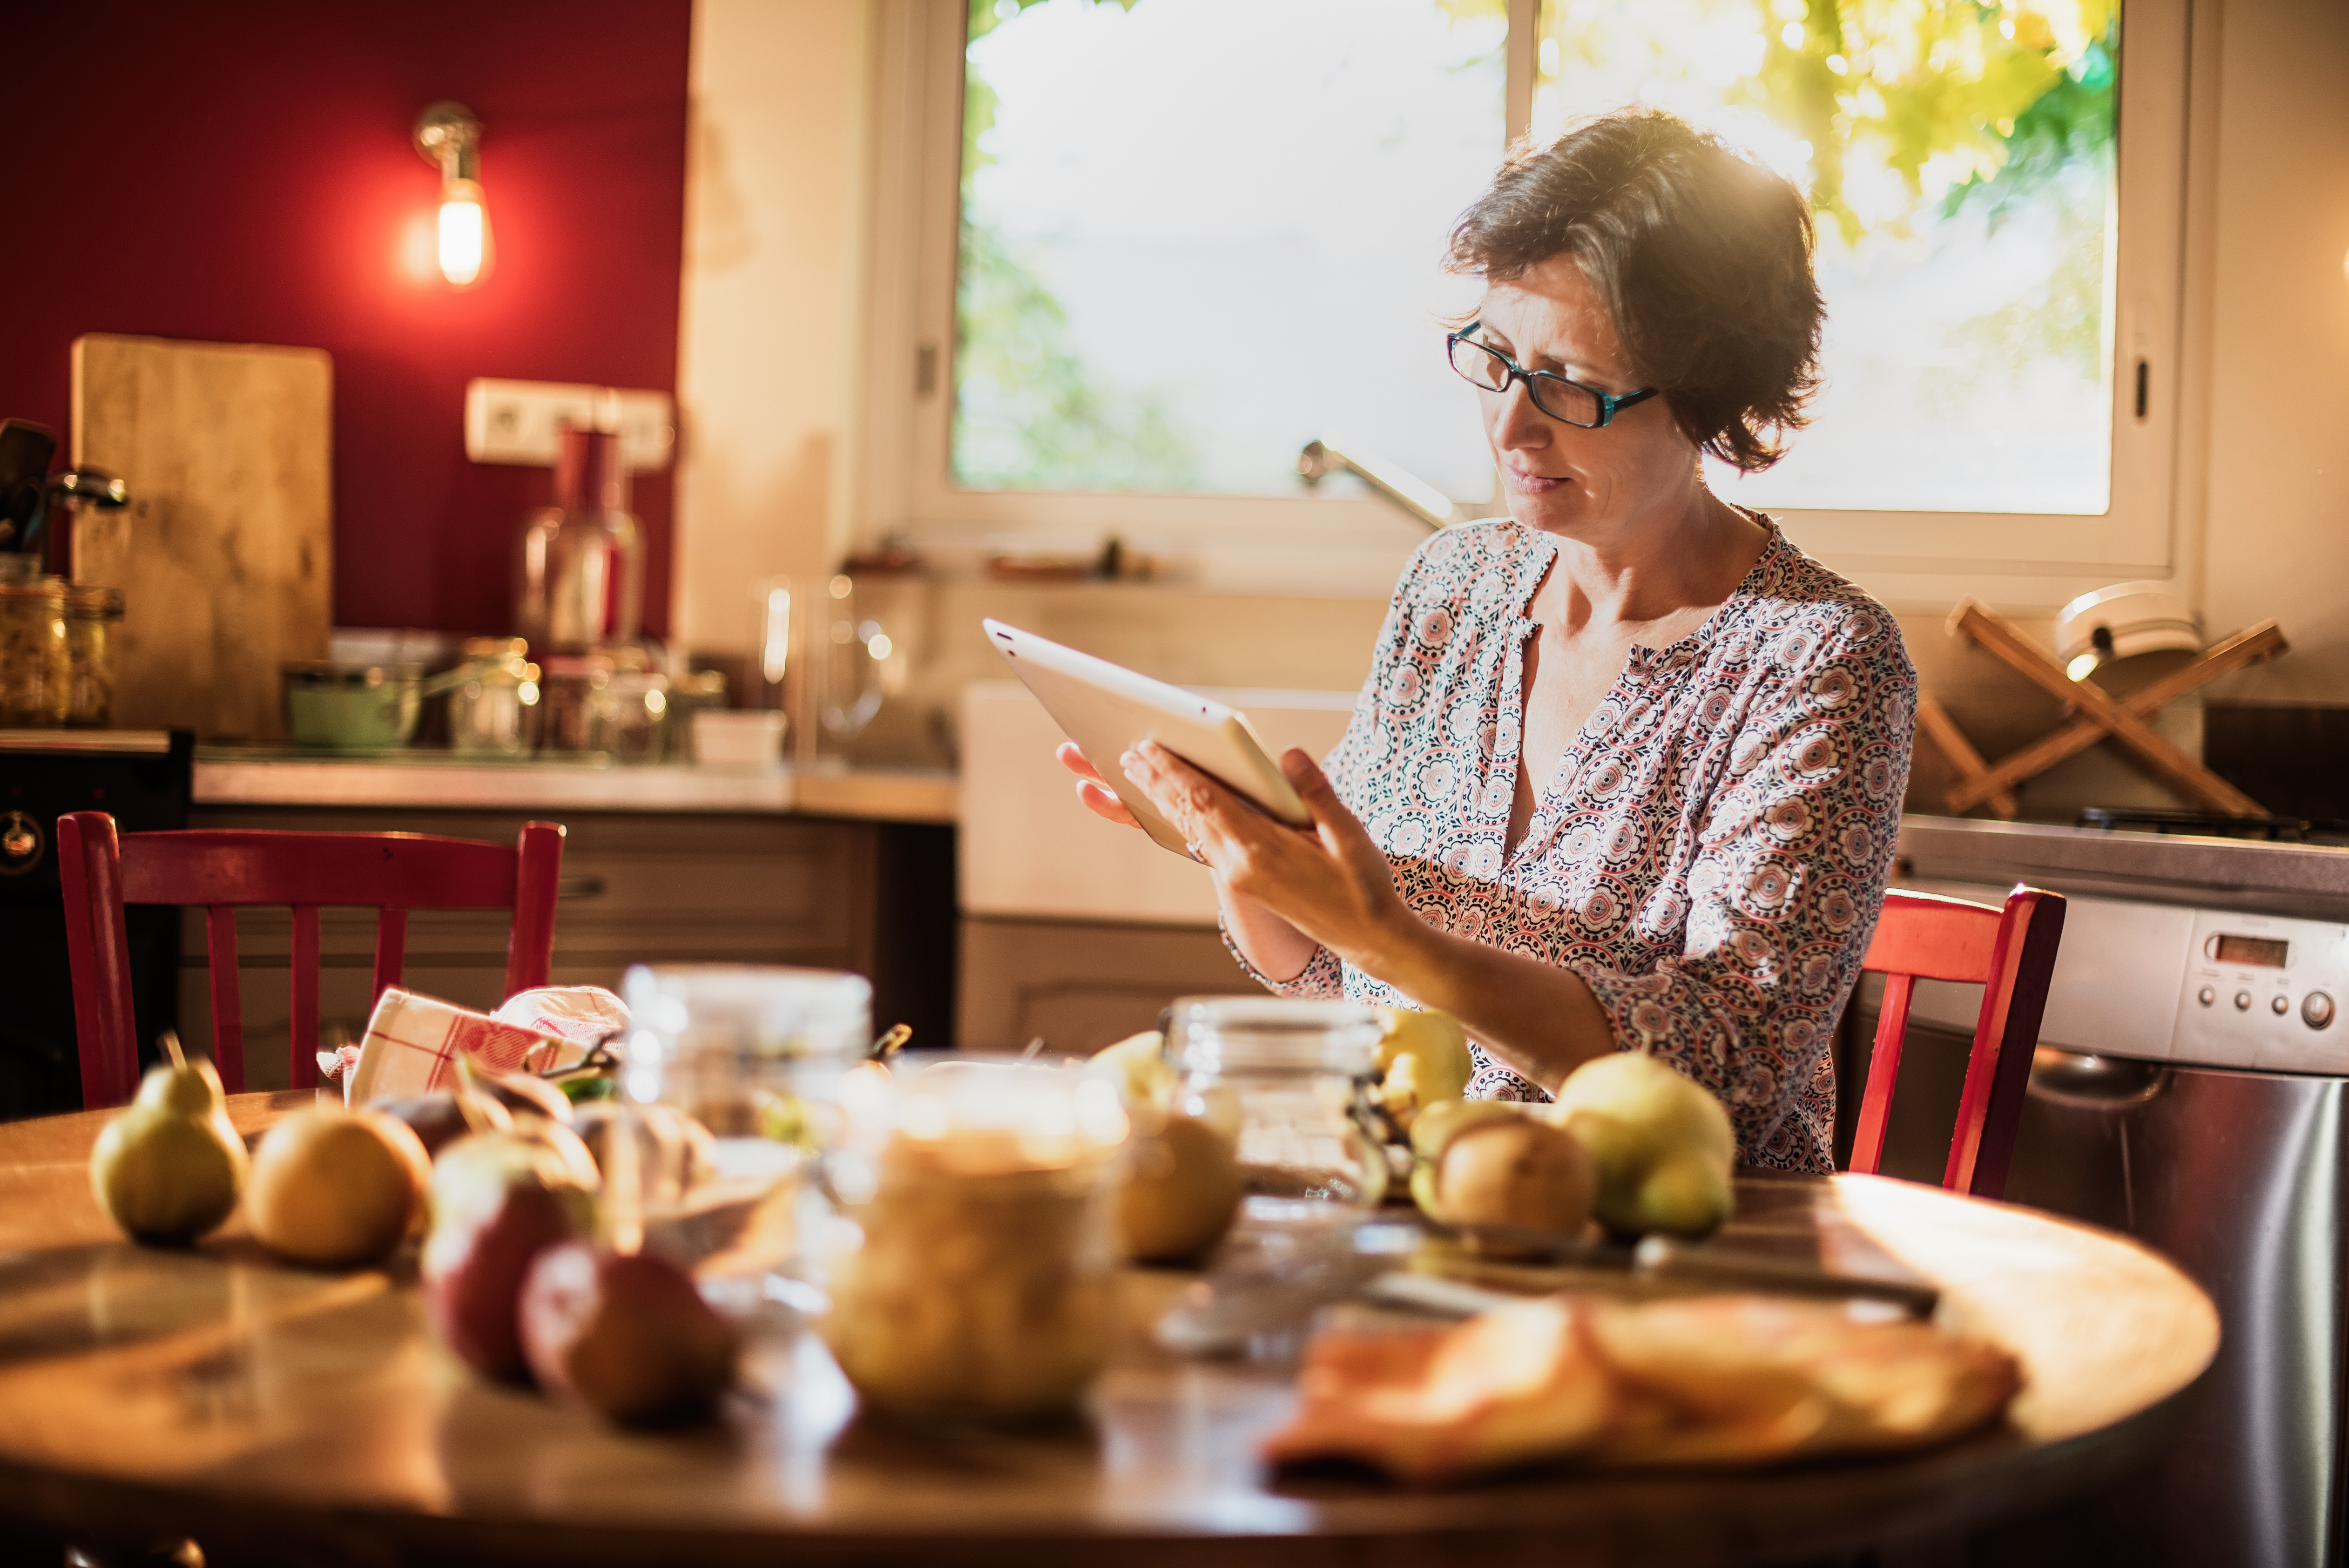 middle-age-woman-eating-healthyjpg